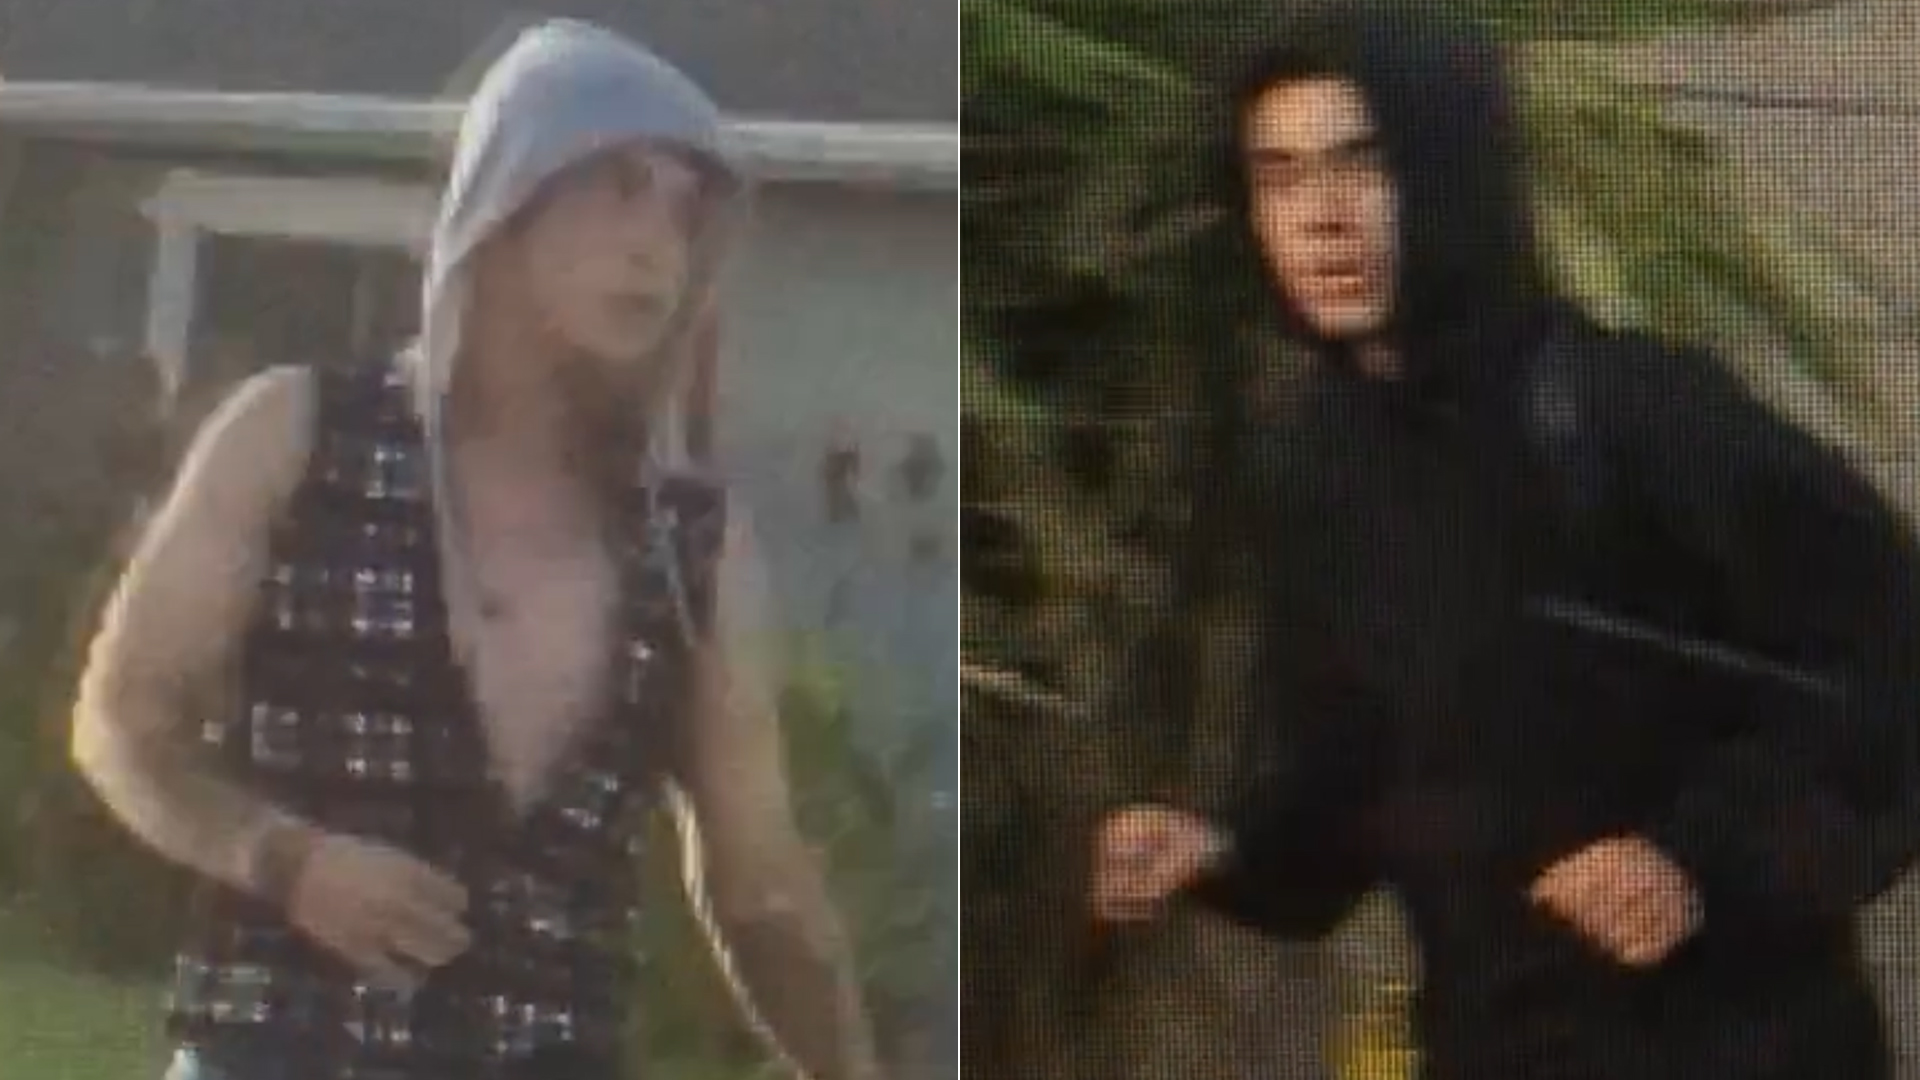 Two people sought by the Ventura County Sheriff's Office for allegedly crashing a truck they stole in Fillmore are shown in photos released by the agency on Sept. 23, 2019.